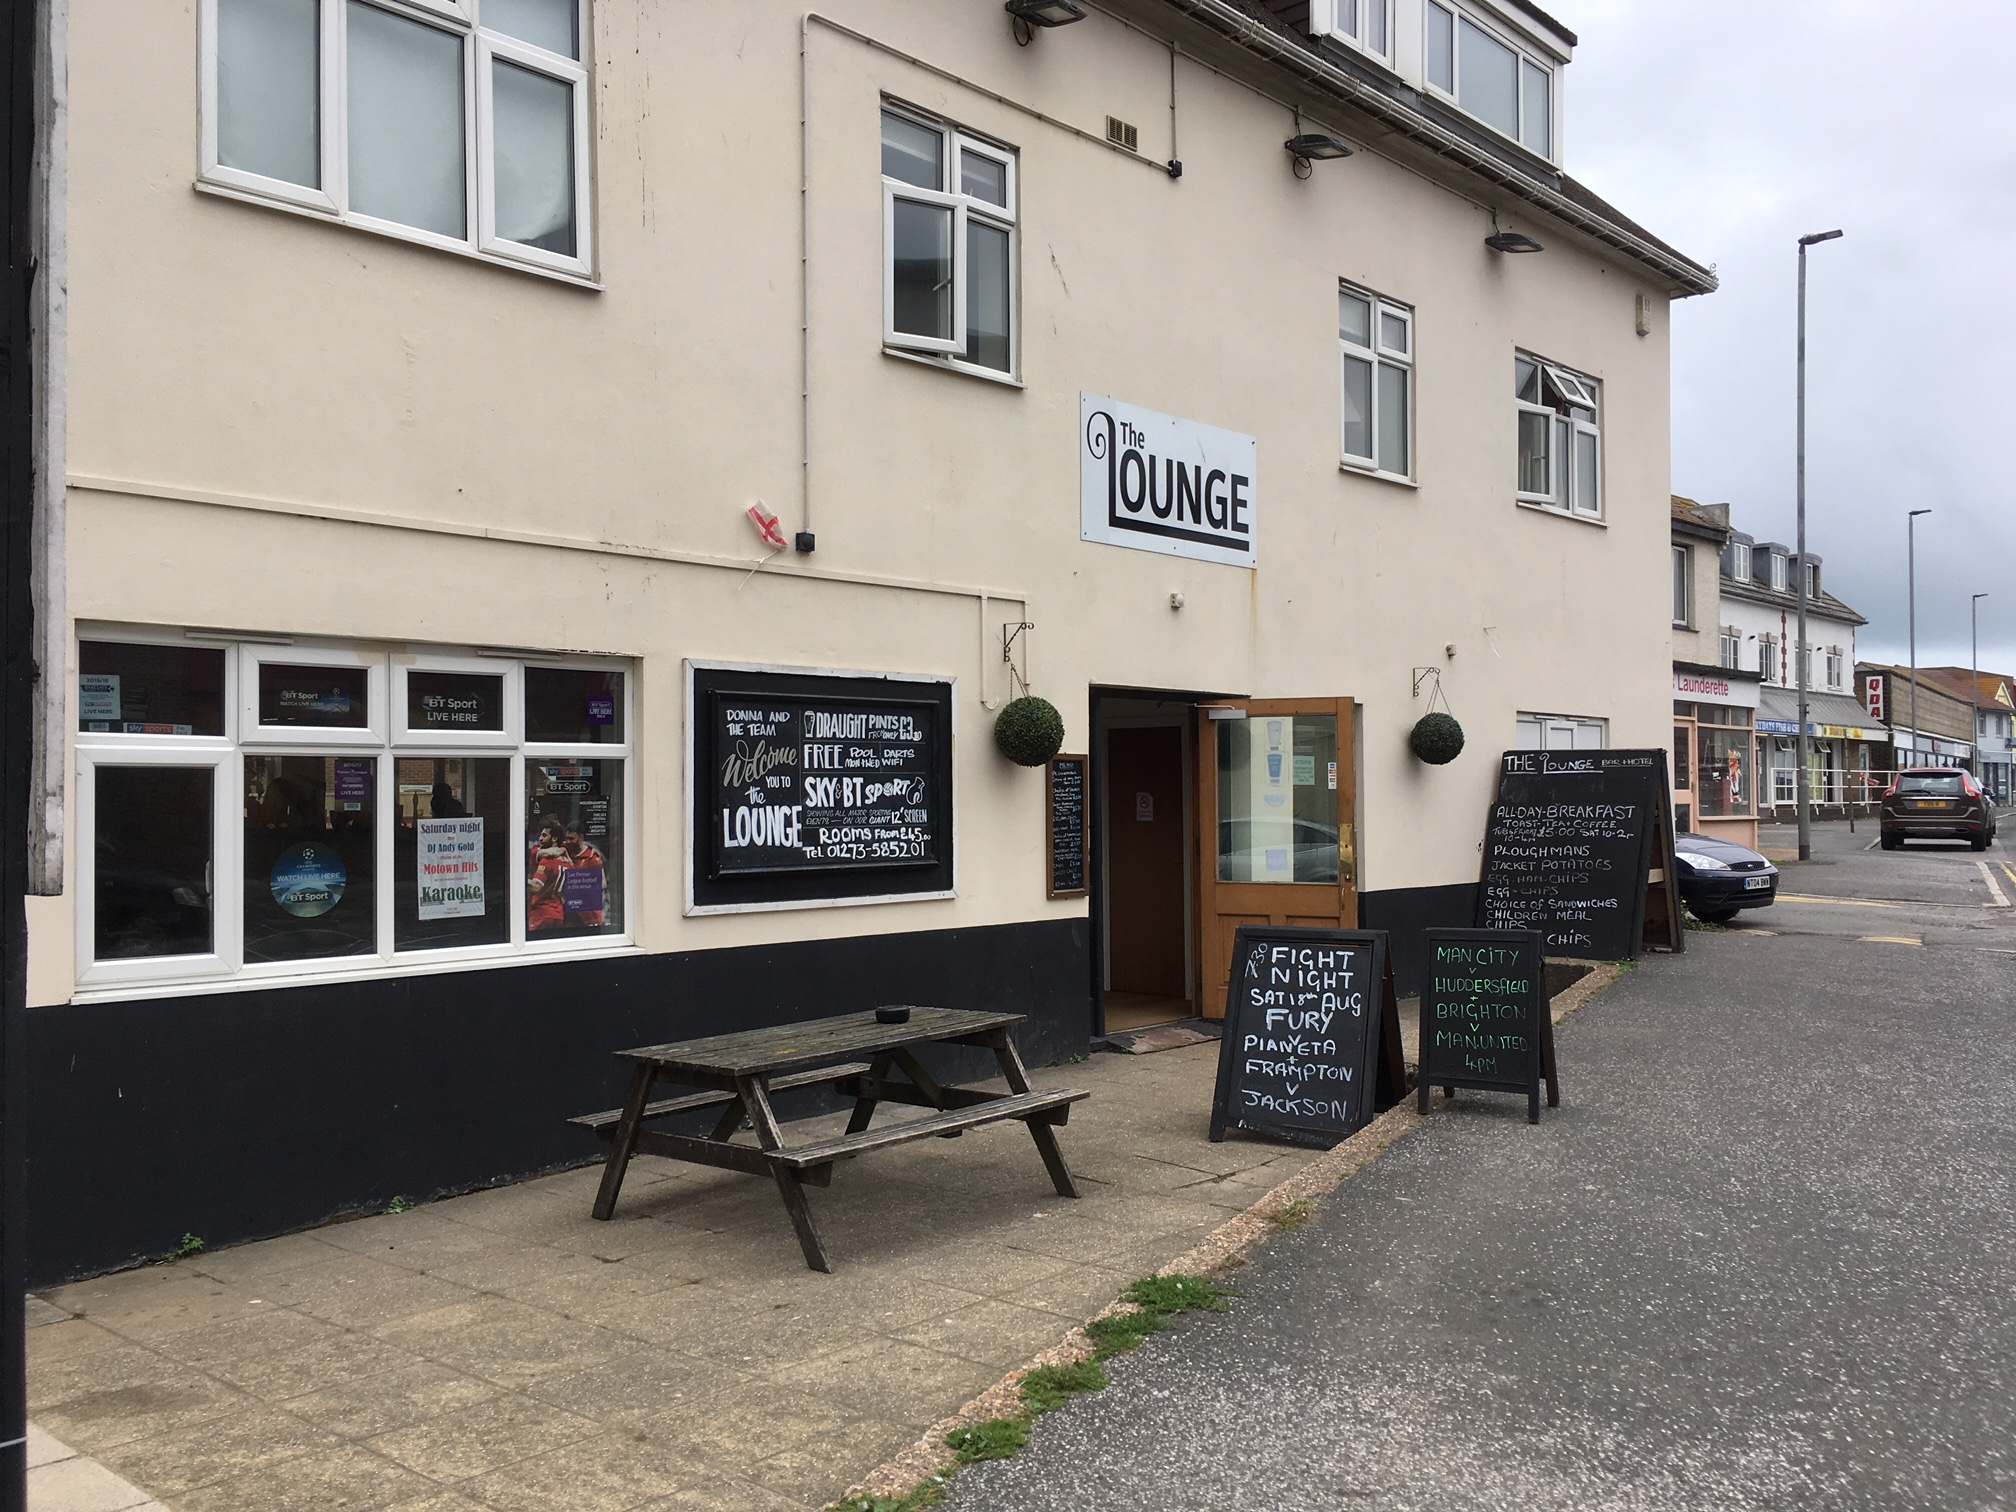 PubSpy: The Lounge, Peacehaven